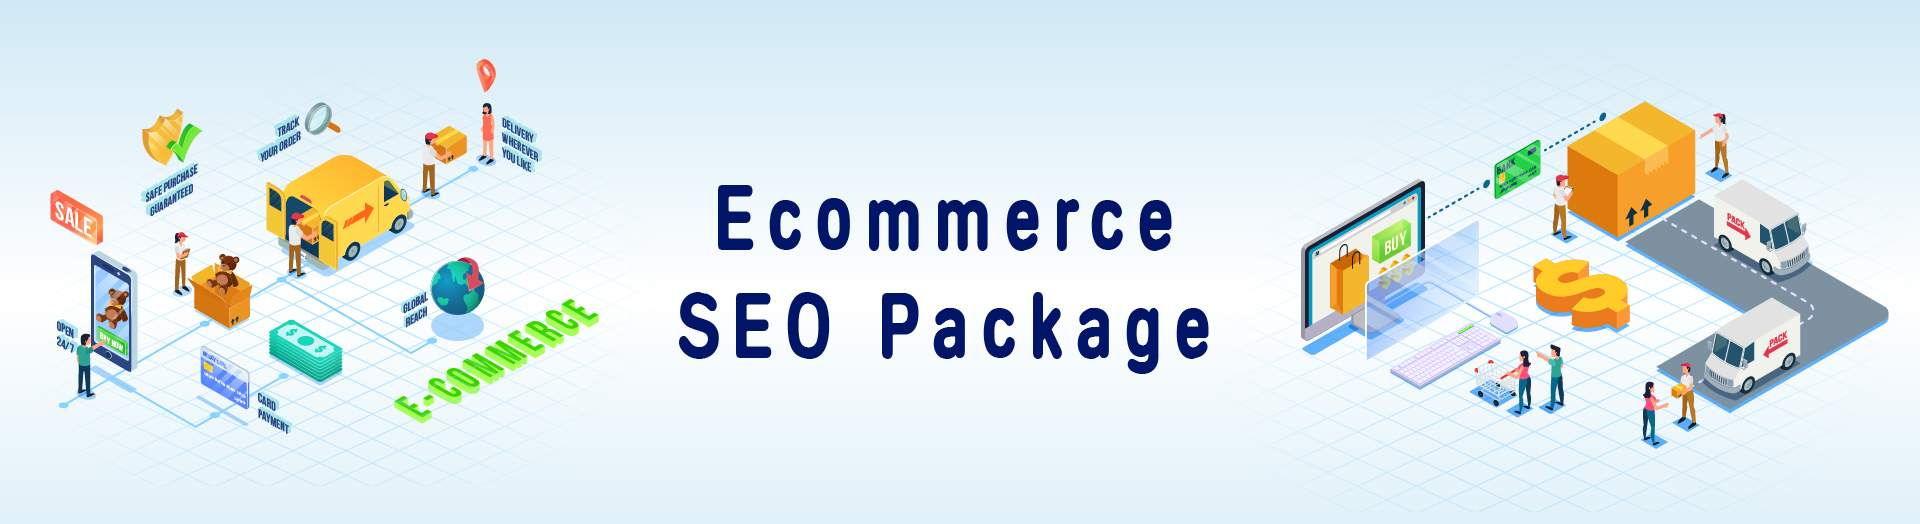 Ecommerce SEO Package